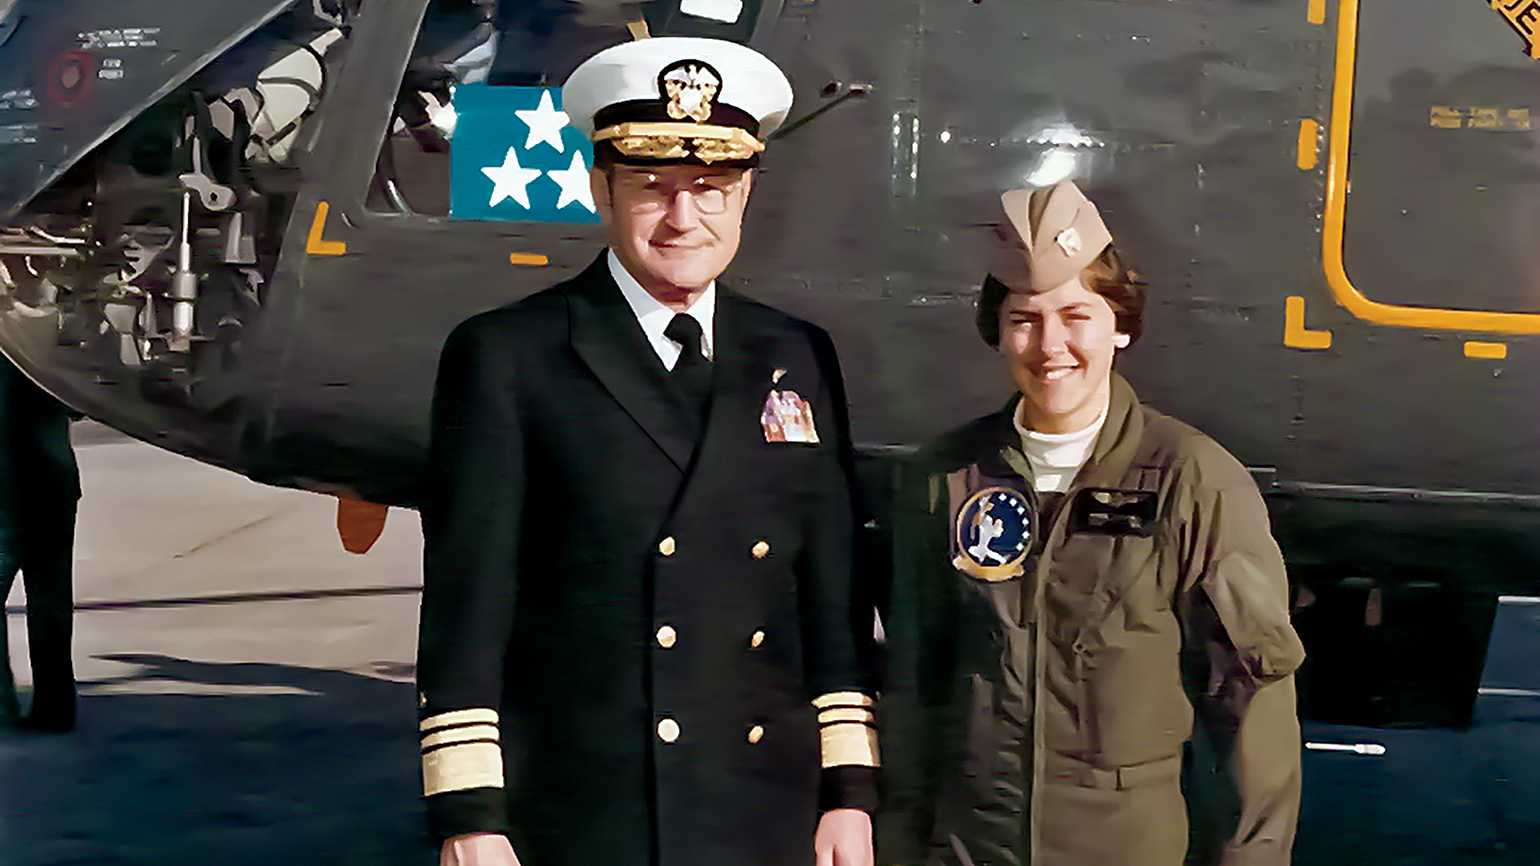 Capt. Wendy Lawrence and father Vice Admiral William Lawrence; photo courtesy Wendy Lawrence